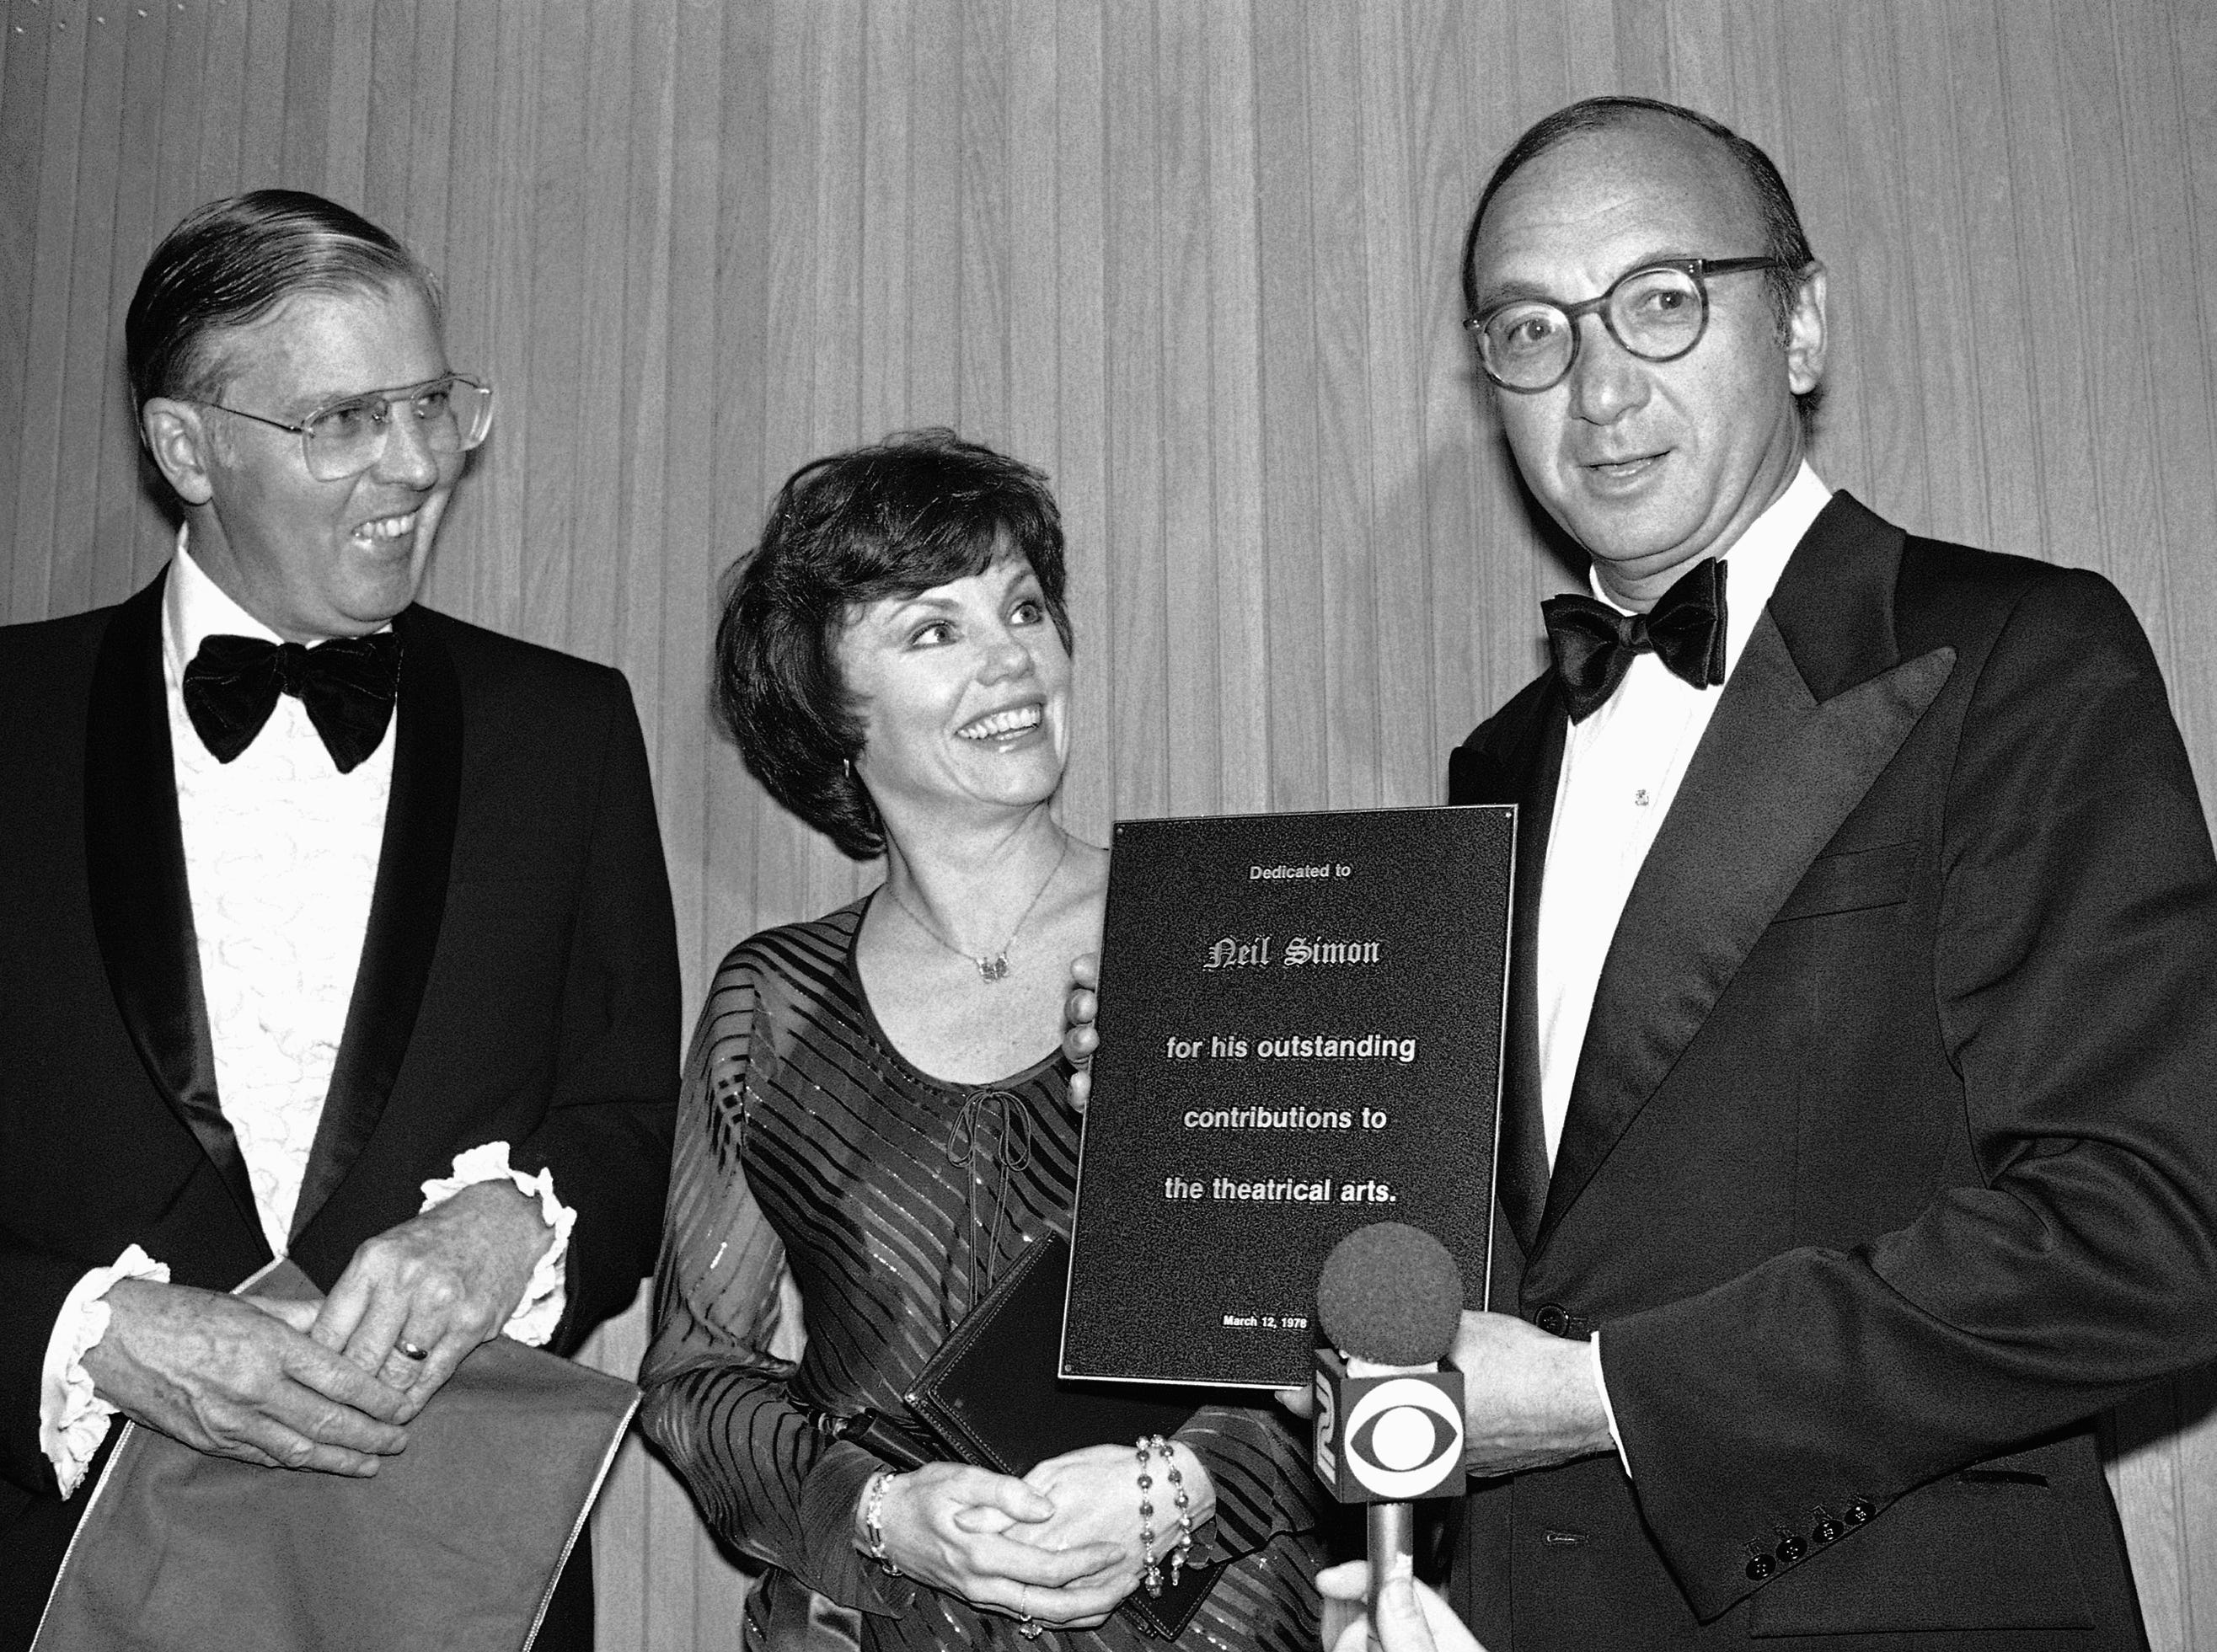 Playwright Neil Simon receives an honorary plaque during ceremonies of the grand opening of the Long Beach Convention and Performing Arts Center, Sunday, March 12, 1978 in Long Beach, Calif. with Simon in his wife, actress Marsha Mason and Long Beach Mayor Tom Clark. Simon was cited for his contributions to theatre, TV and motion pictures. (AP Photo/George Brich)